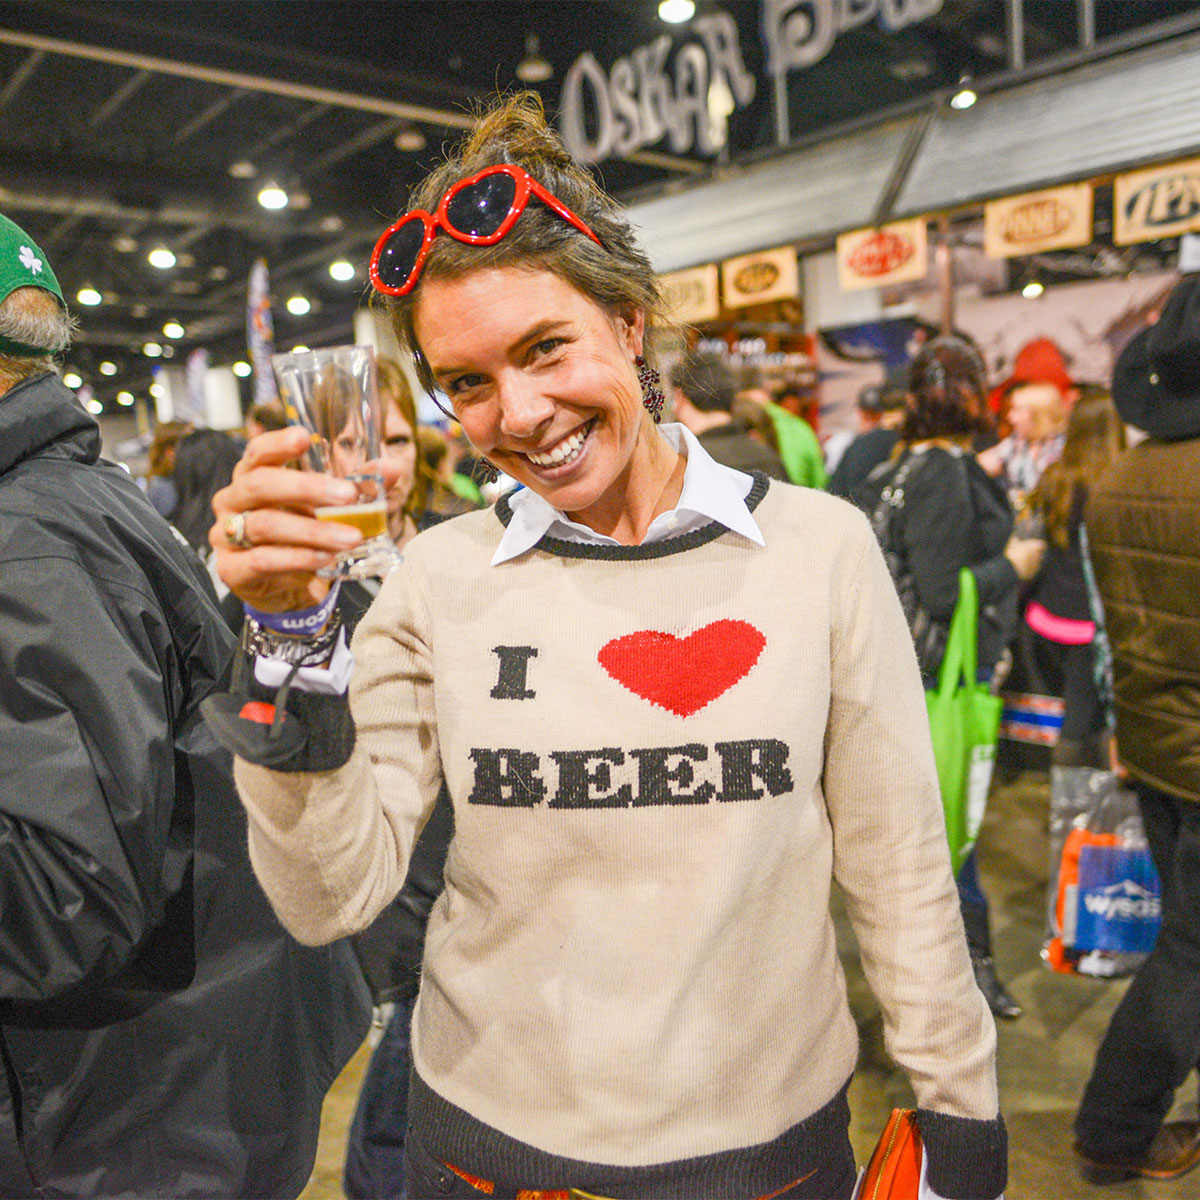 Great American Beer Festival in 2017